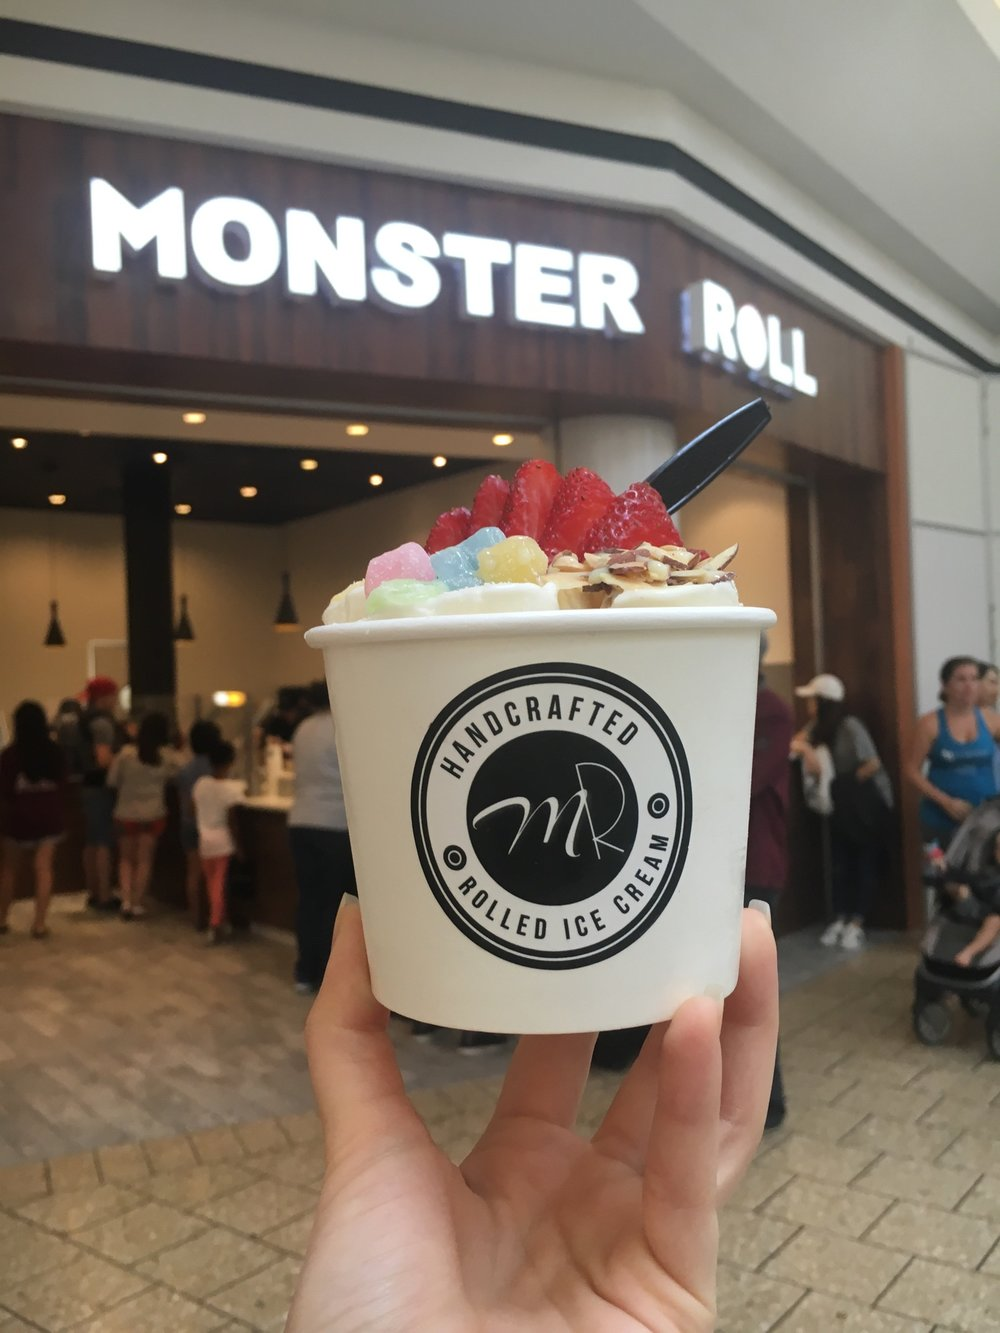 Grand opening of Monster Roll Ice Cream in Fair Oaks mall. Free toppings all day July 29th!